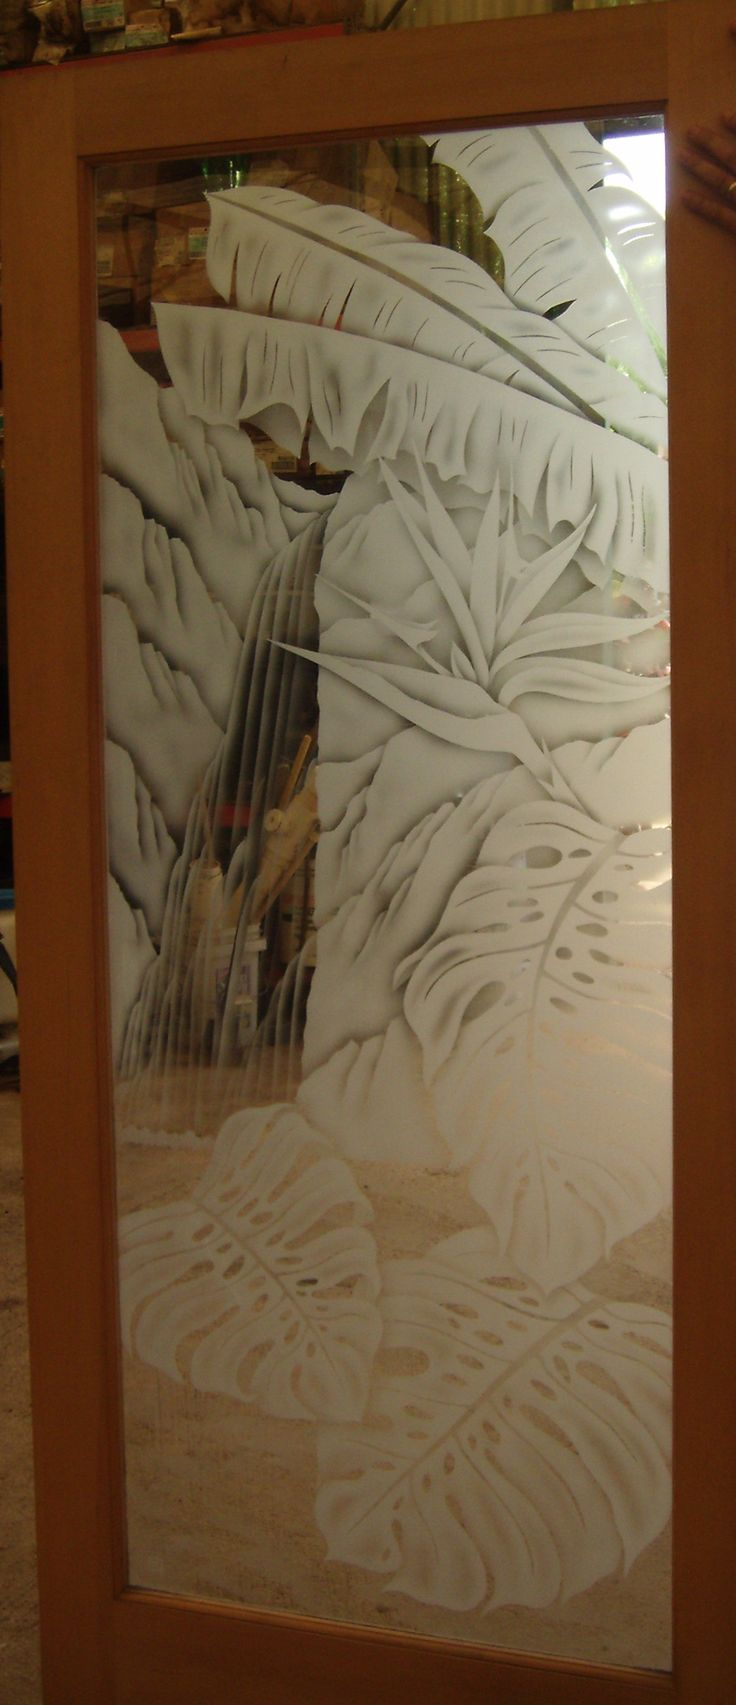 Etched glass doors privacy glass door inserts bamboo pictures to pin - Find This Pin And More On Etched Glass Pieces By Tomtrottier3